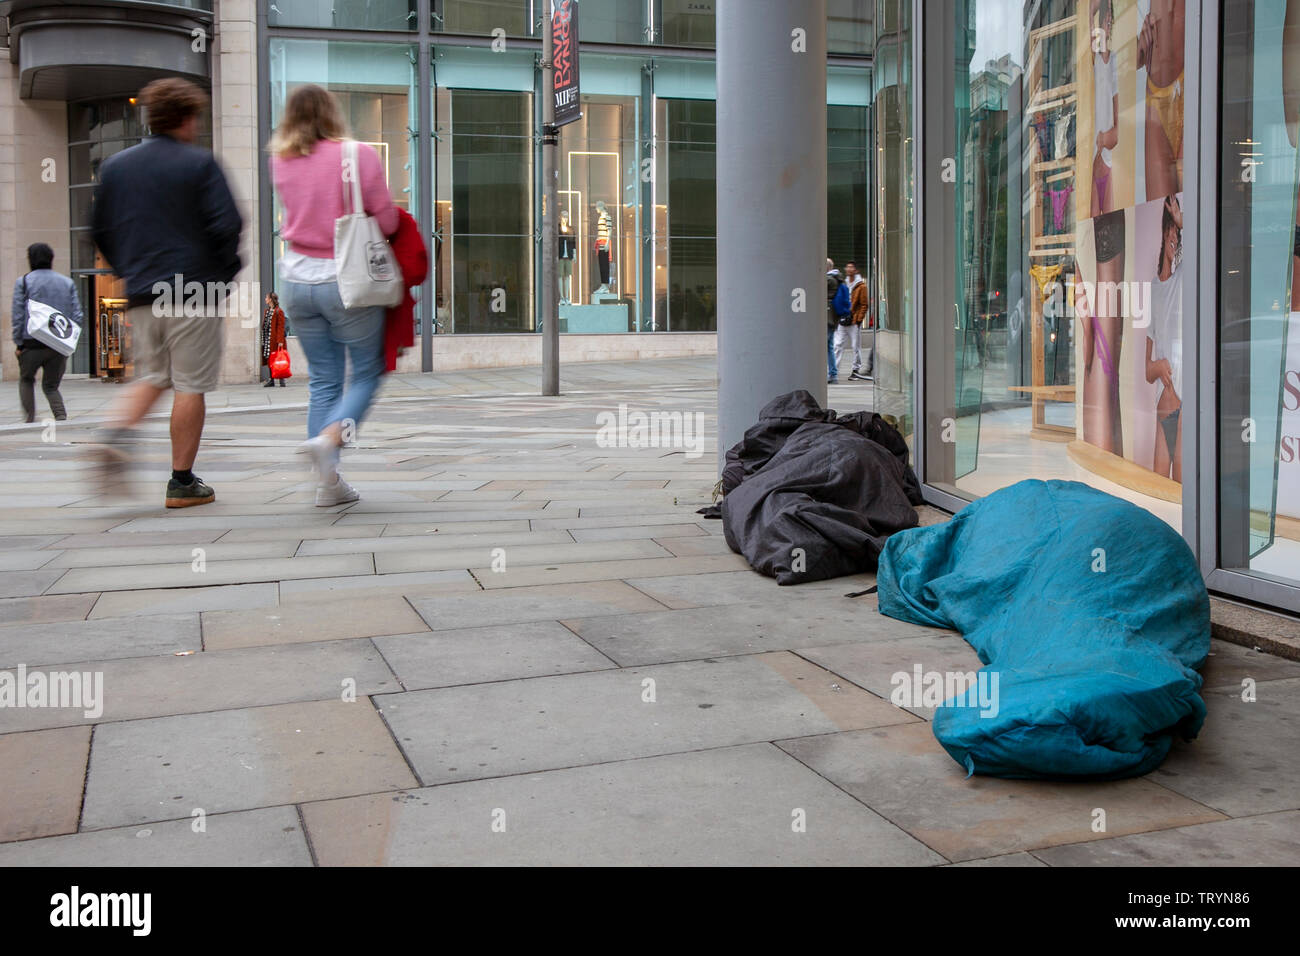 Homeless, homlessness, sleeping rough in Manchester cuty centre, UK - Stock Image